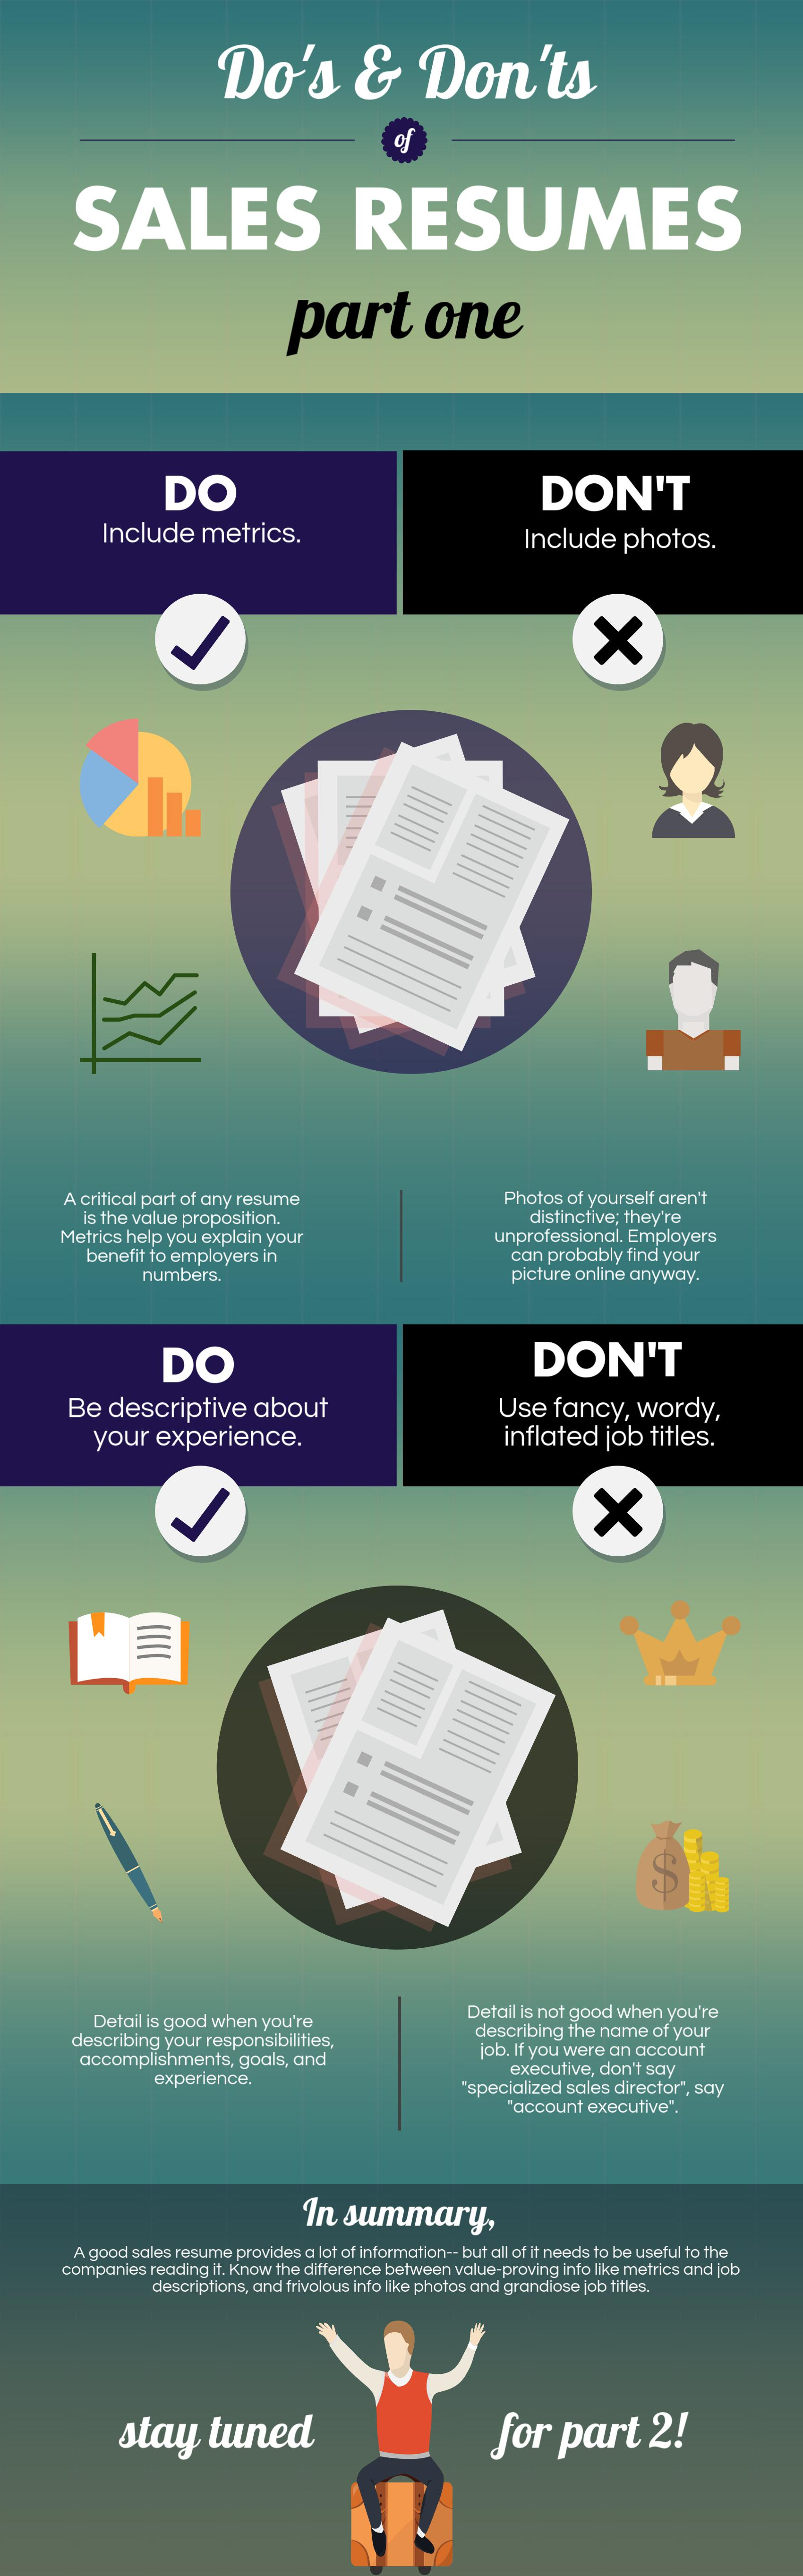 Dos And Donts Of Sales Resumes Part 1 Infographic